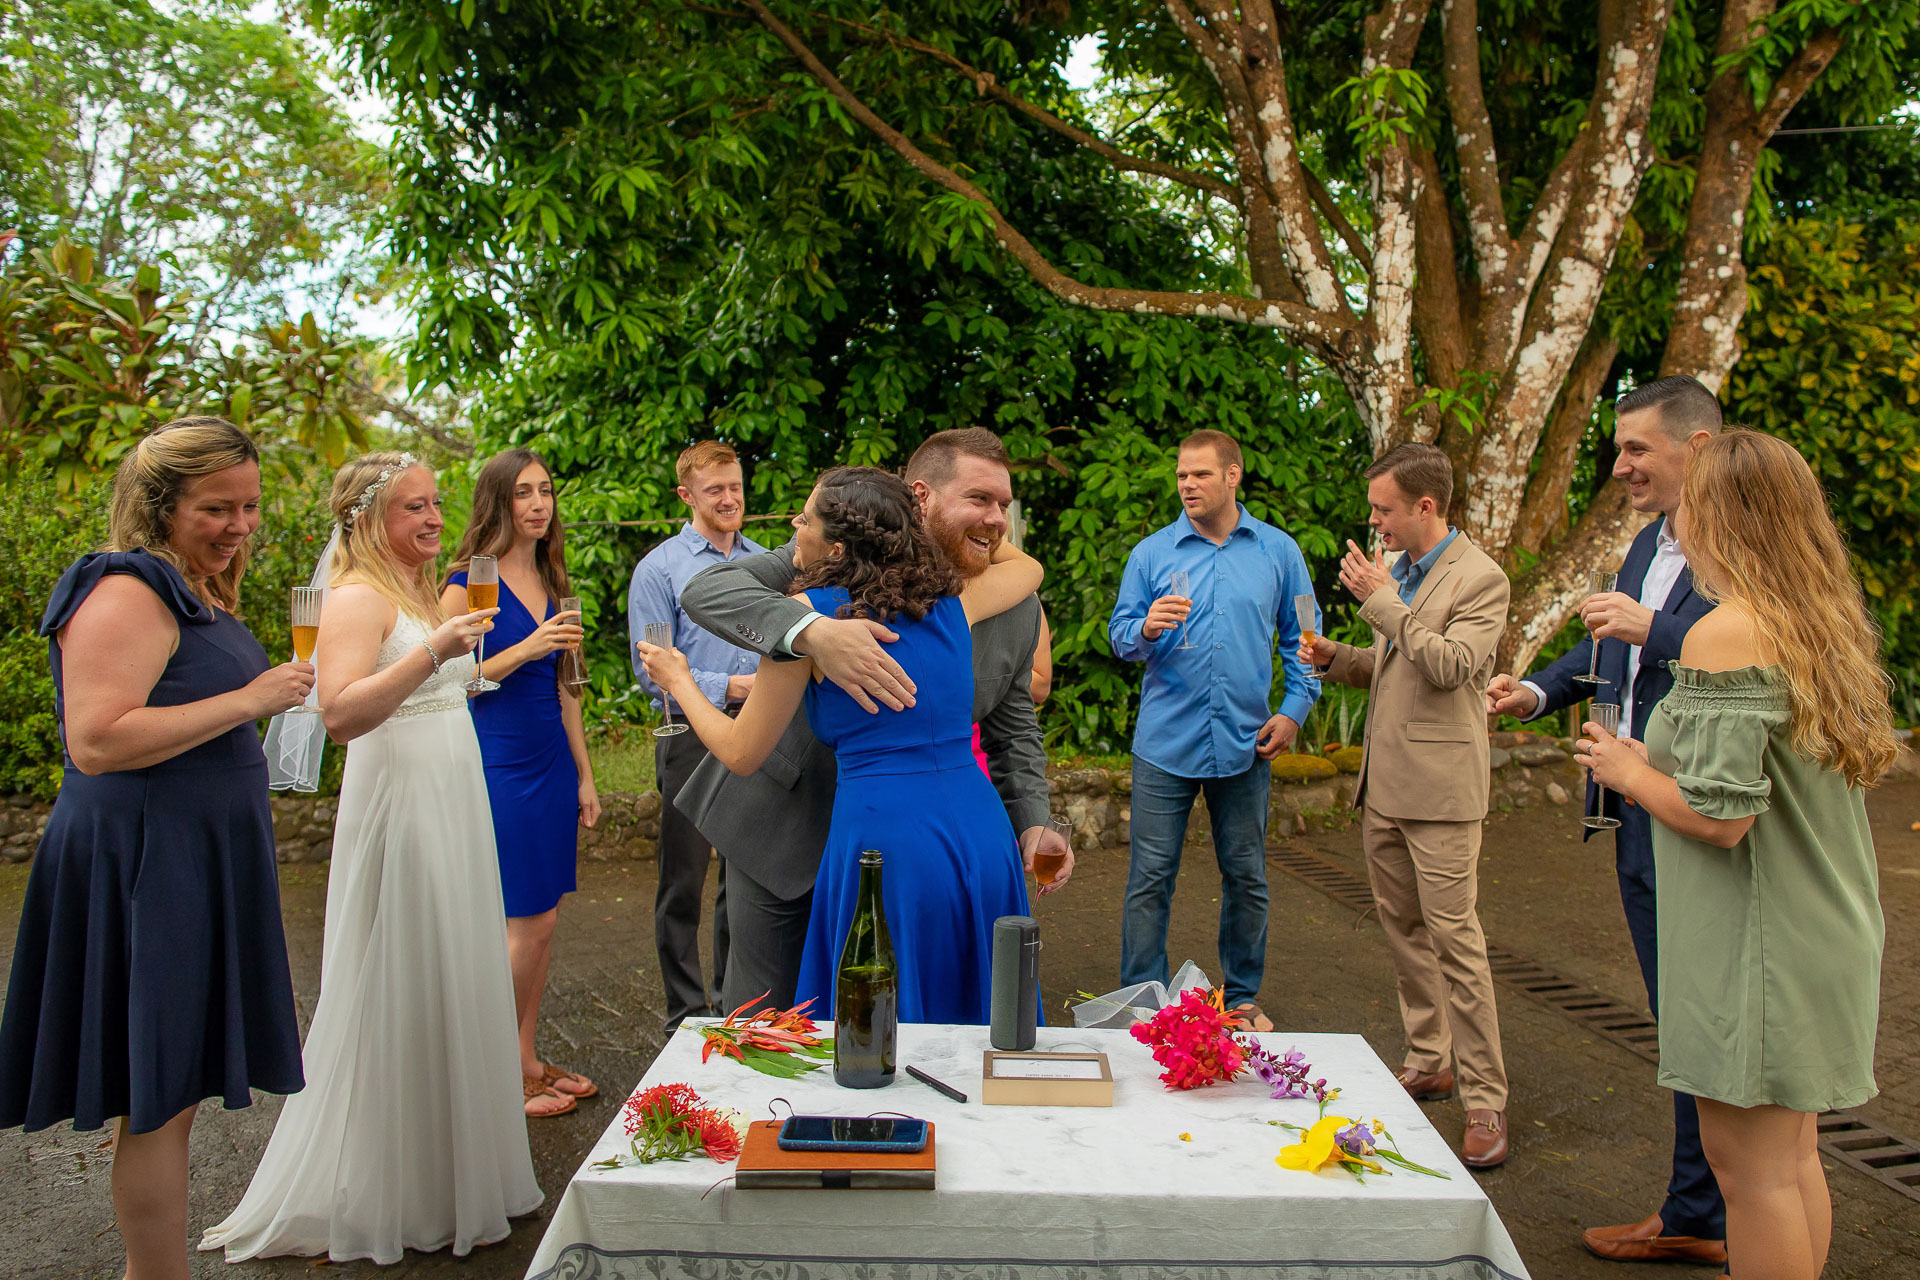 Outdoor Costa Rica Elopement Ceremony Photographer | The newlyweds are congratulated